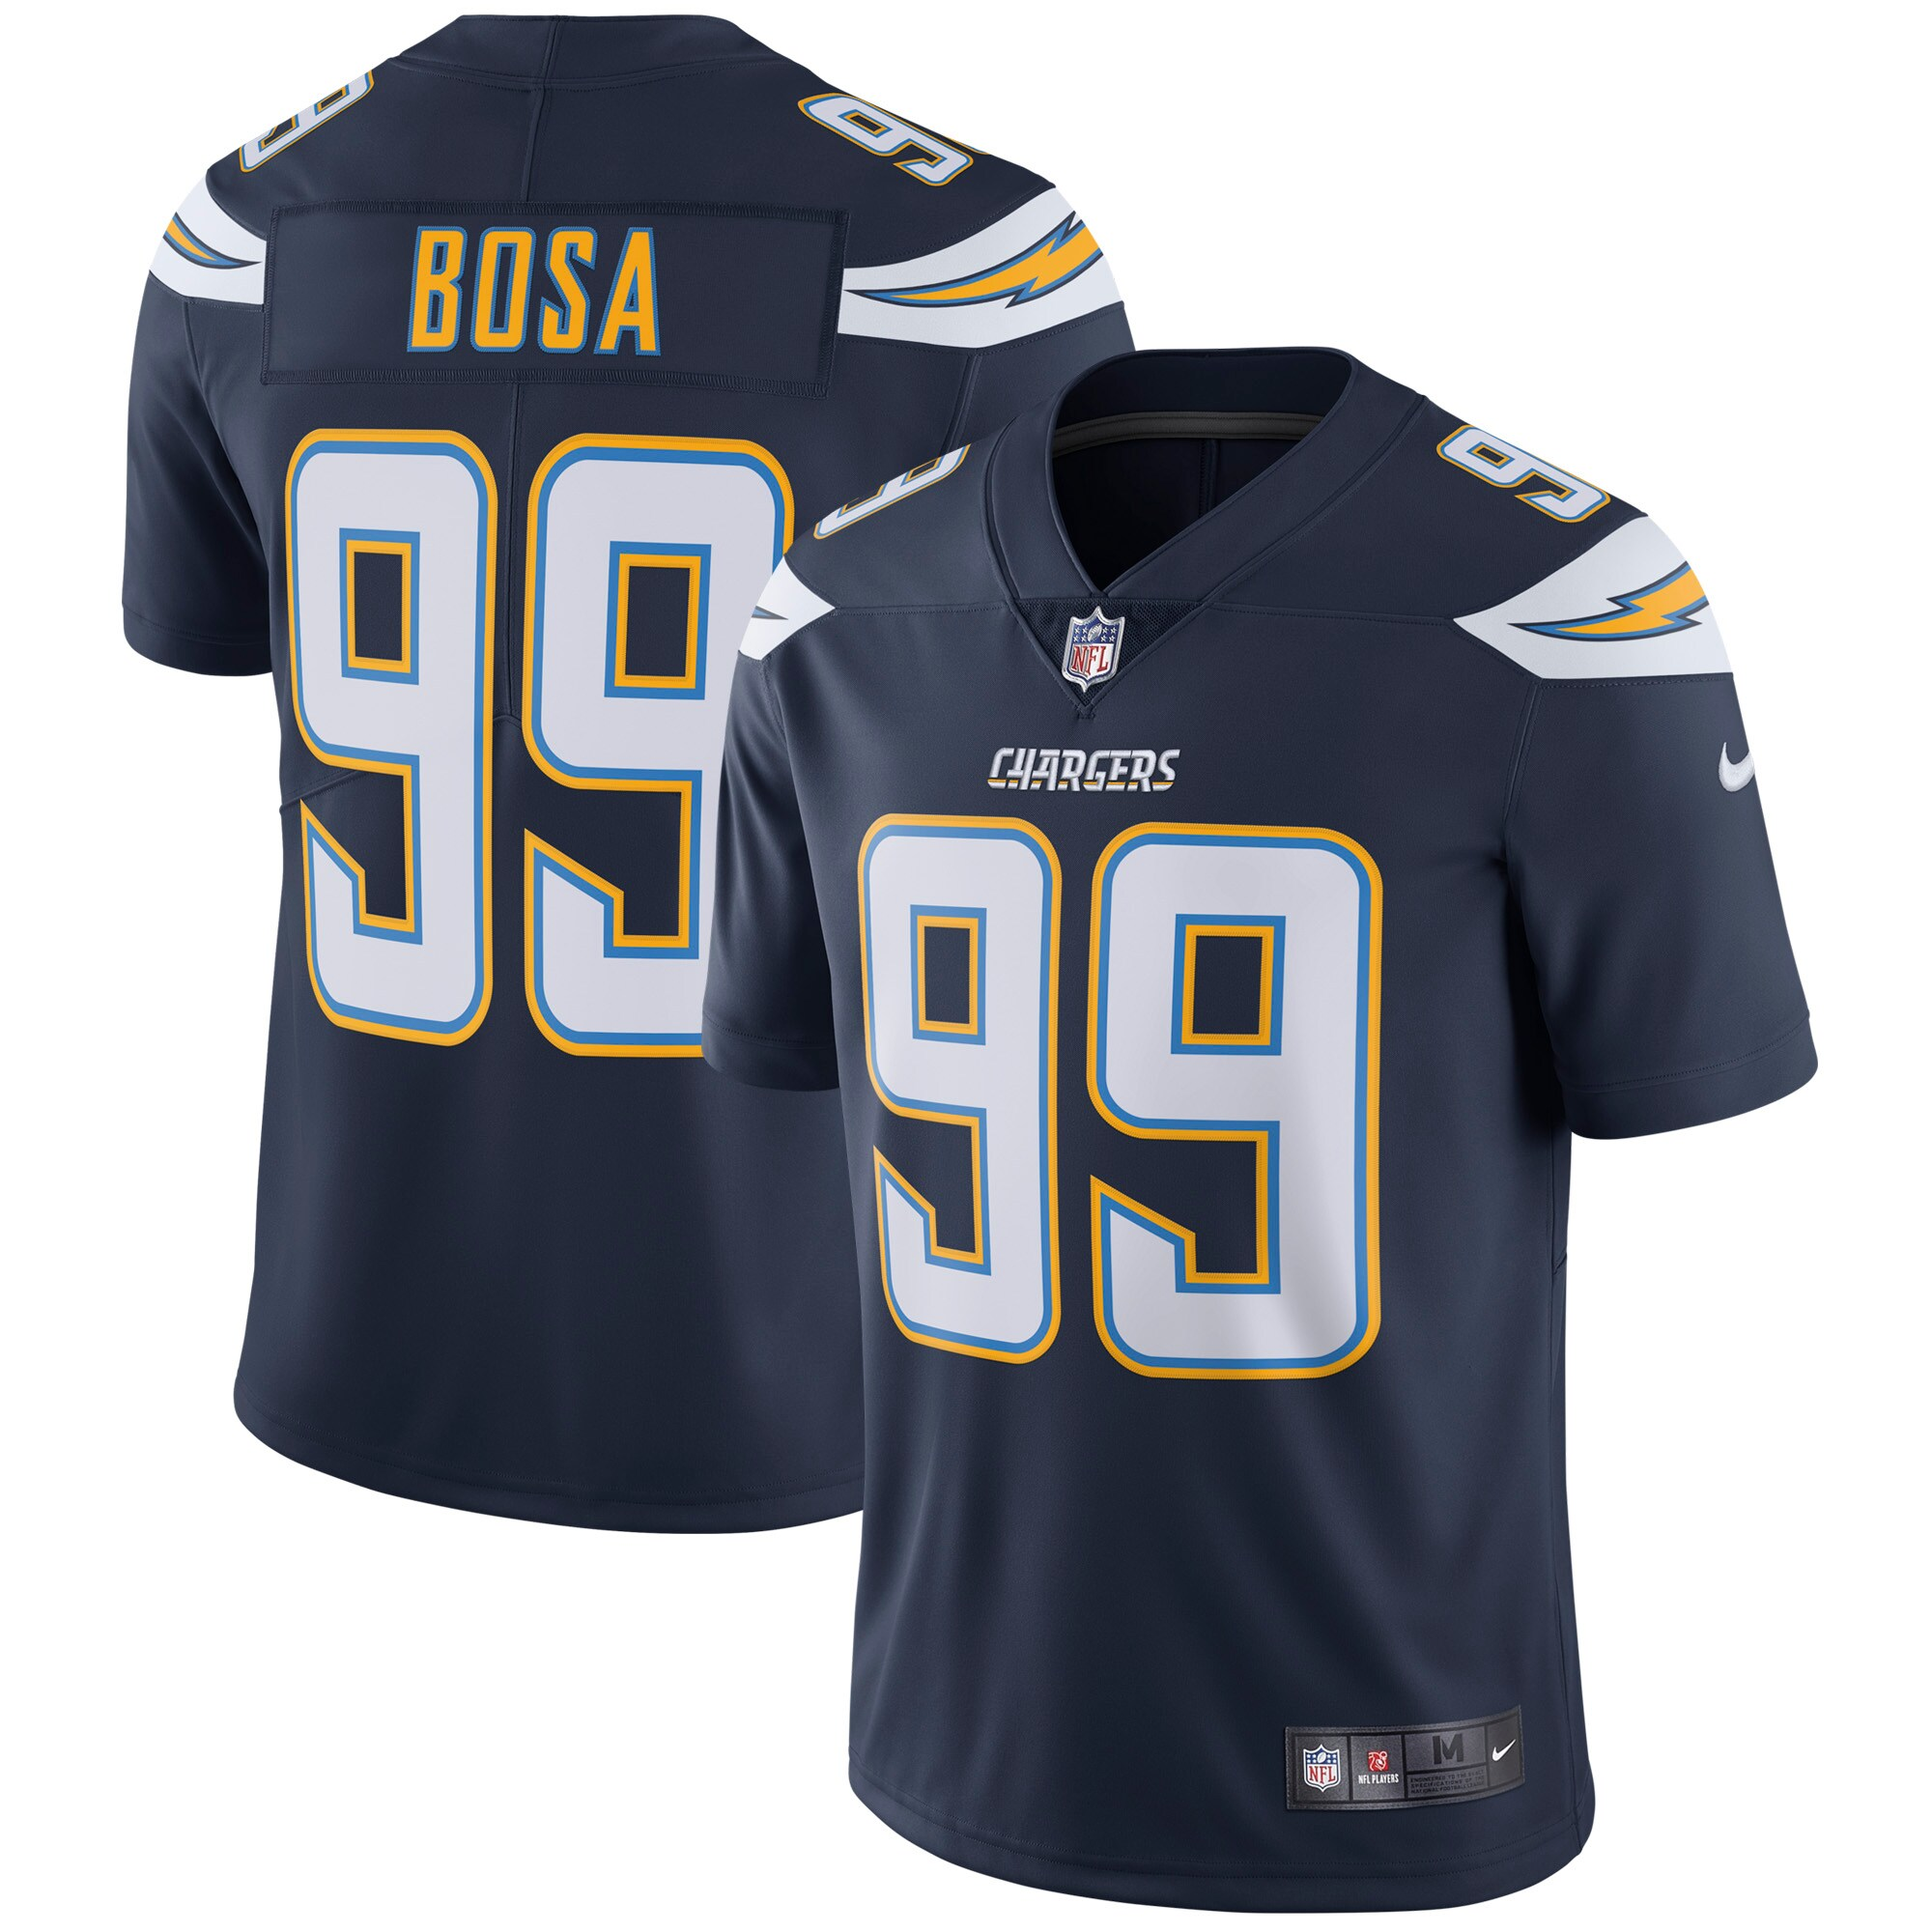 Joey Bosa Los Angeles Chargers Nike Vapor Untouchable Limited Player Jersey - Navy